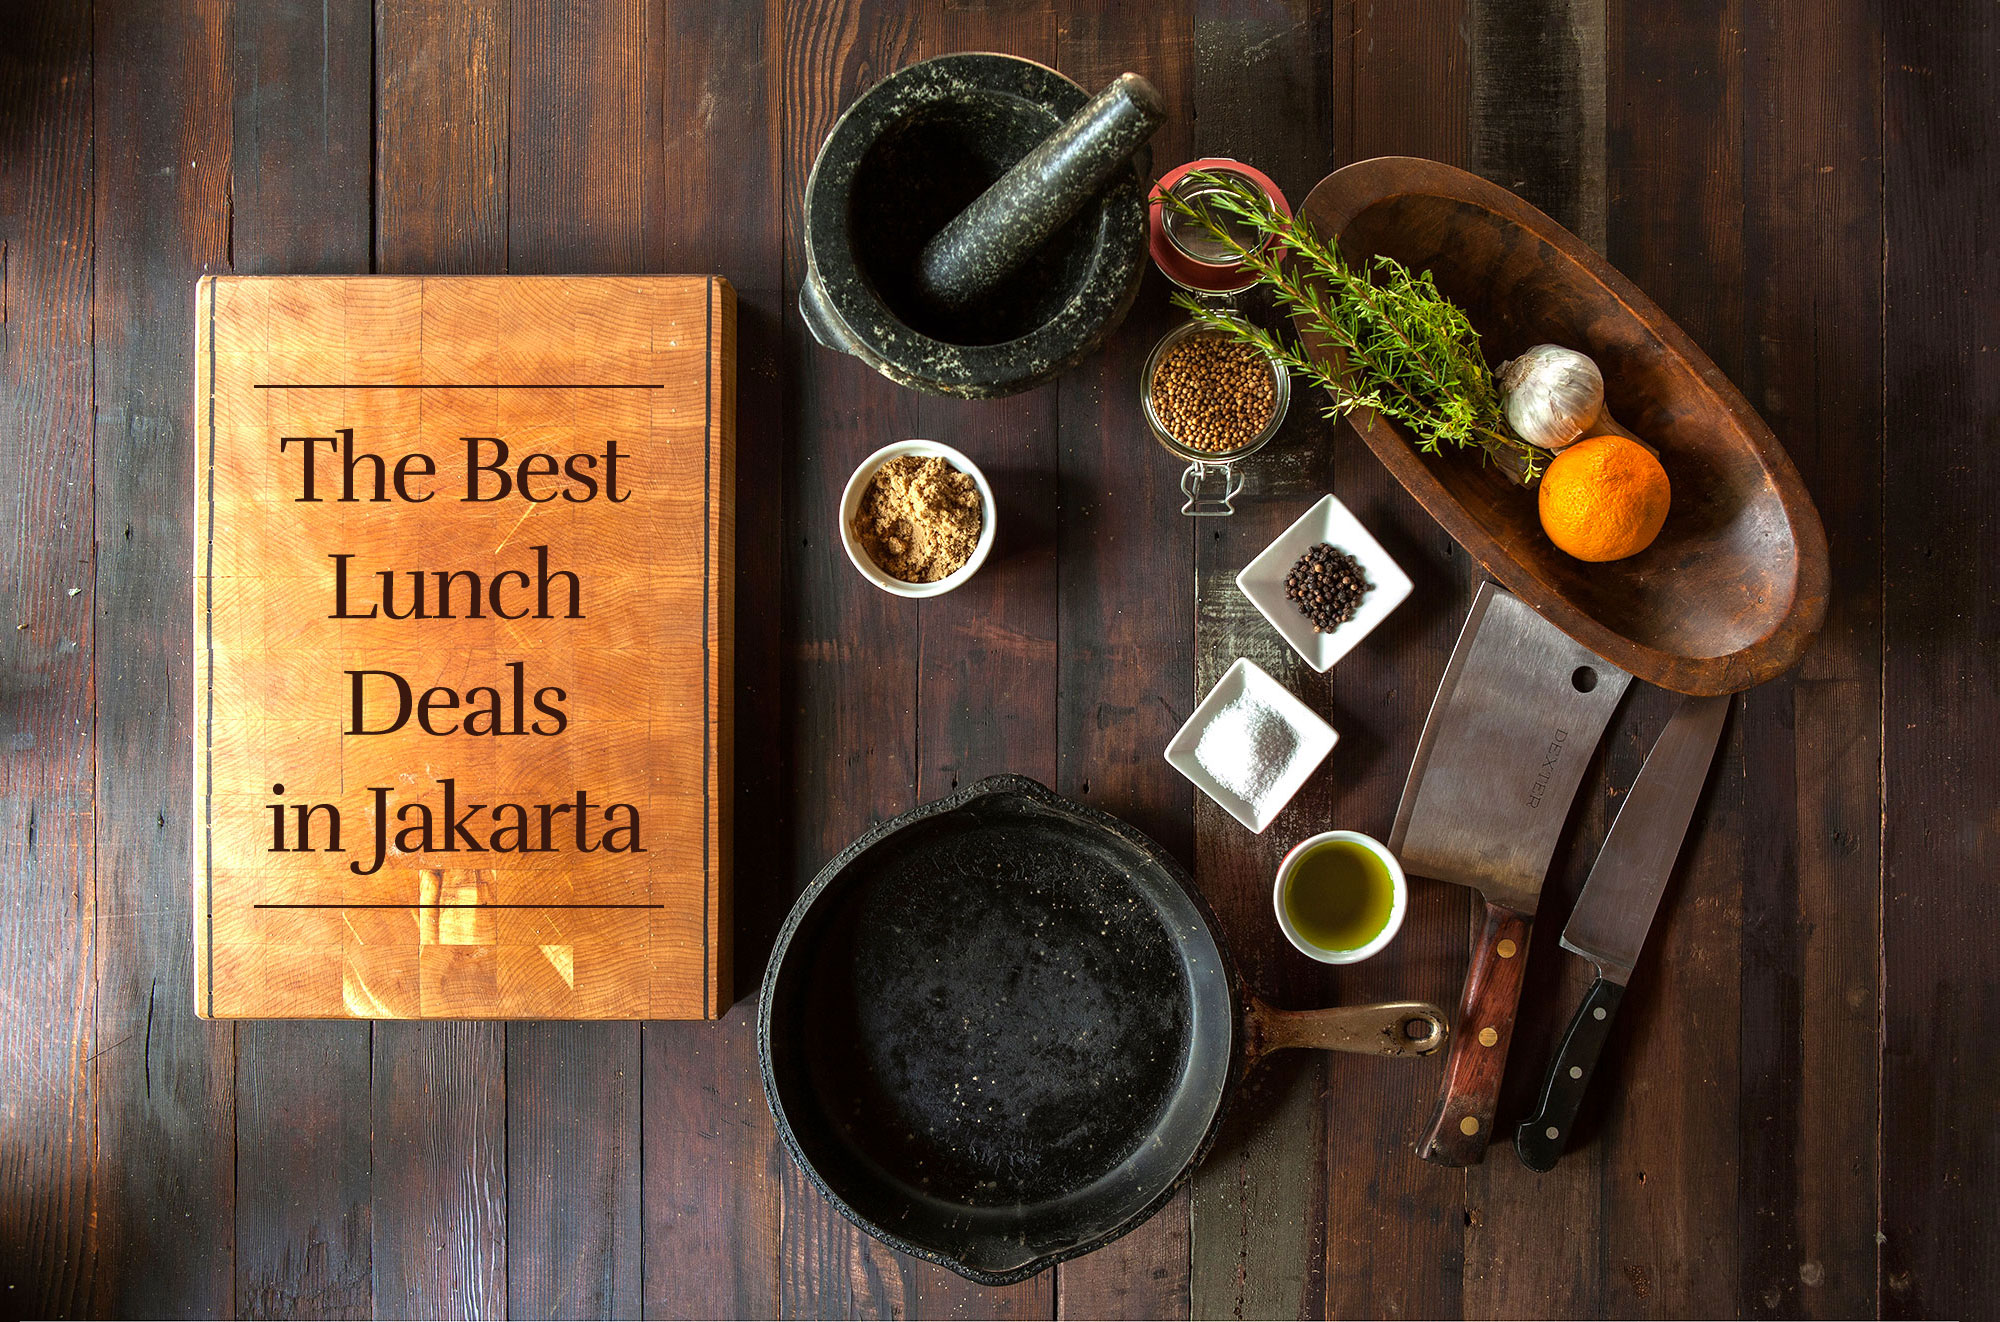 The Best Lunch Deals in Jakarta